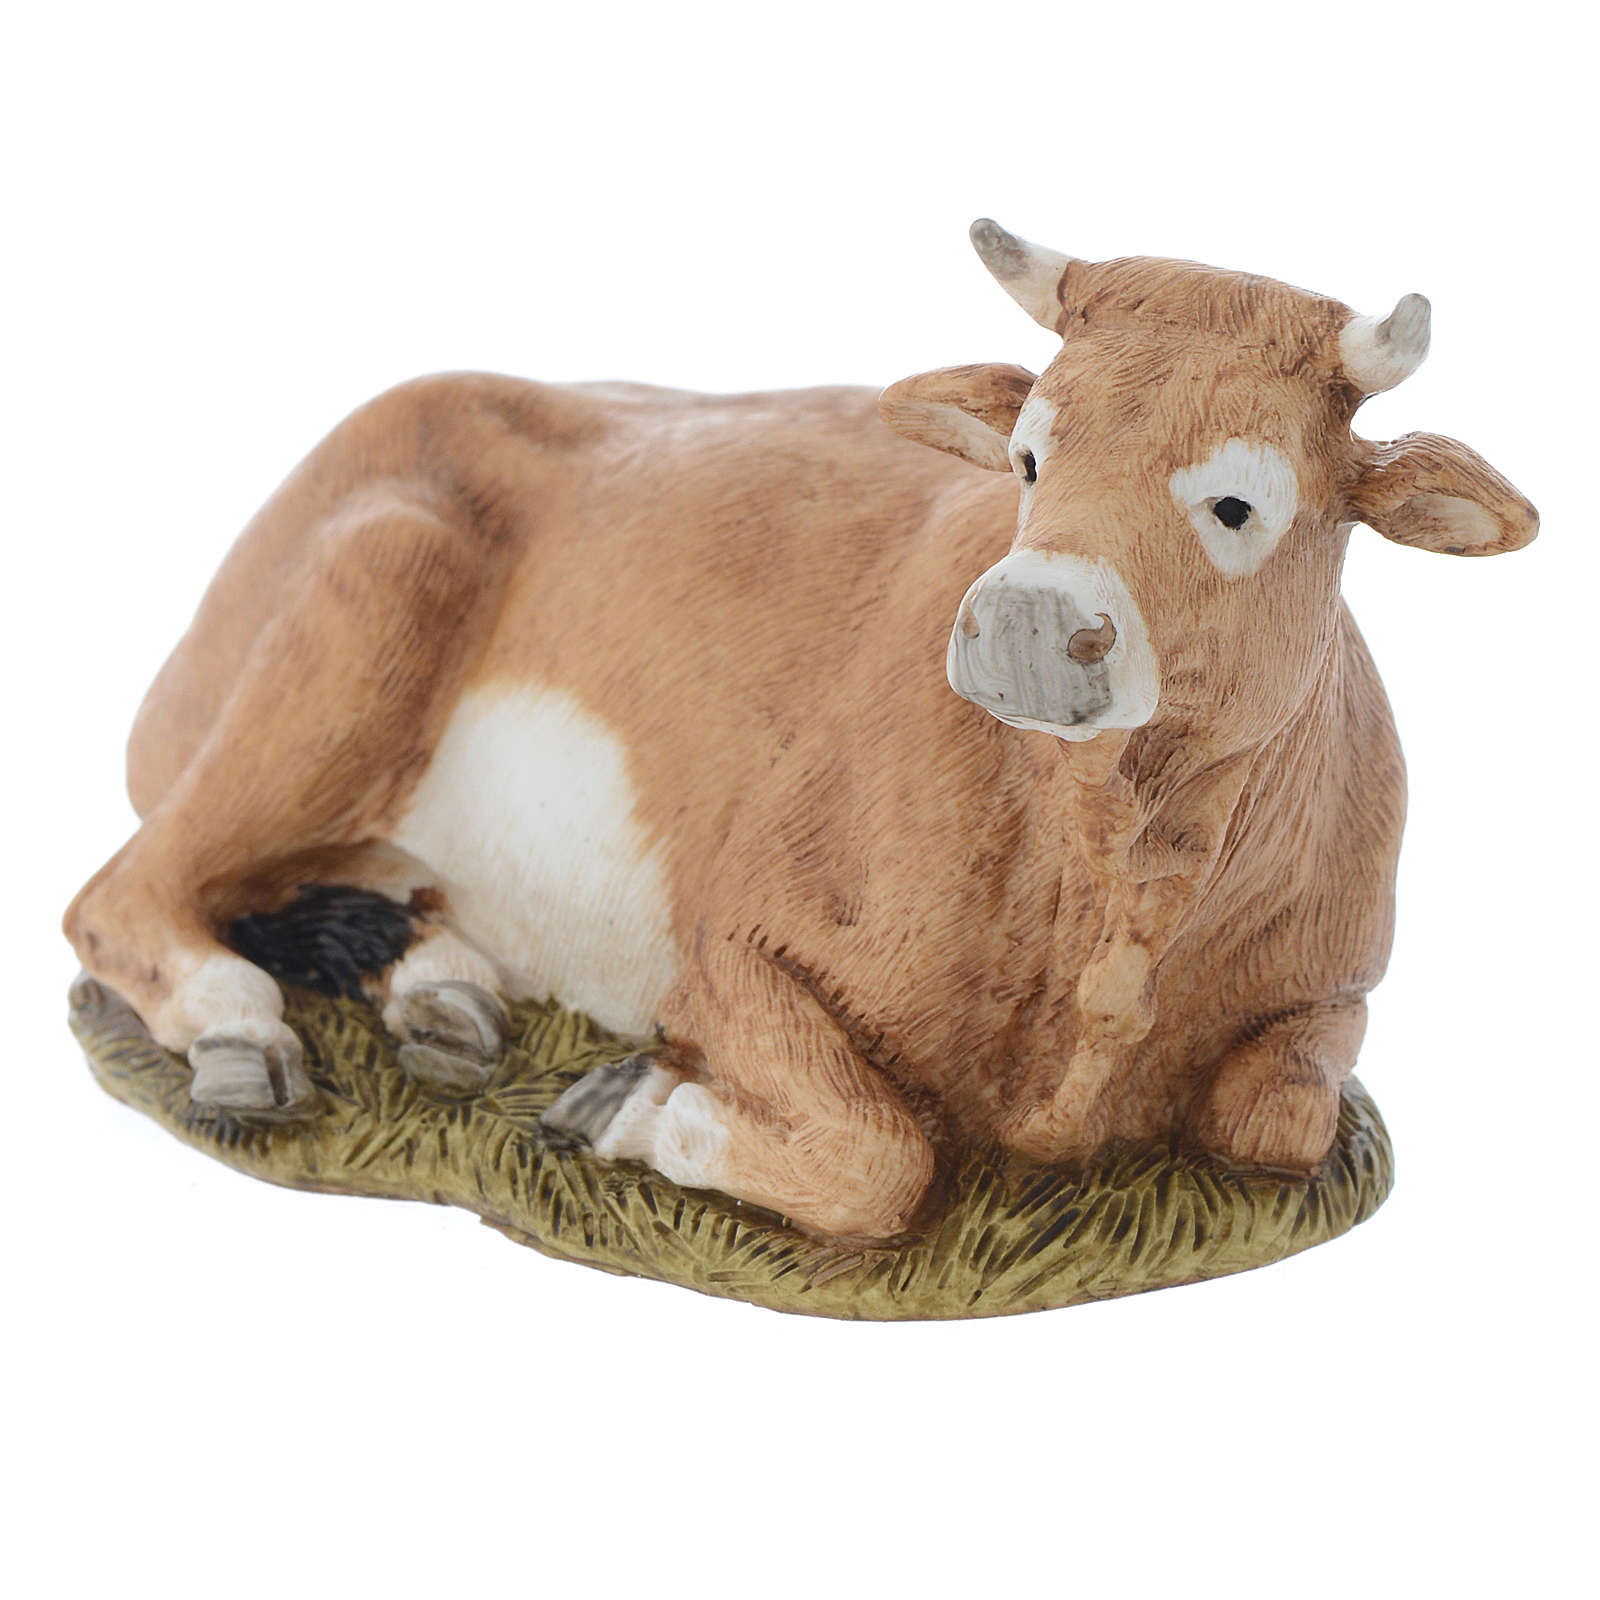 Nativity scene figurine, ox, 11cm by Landi 3